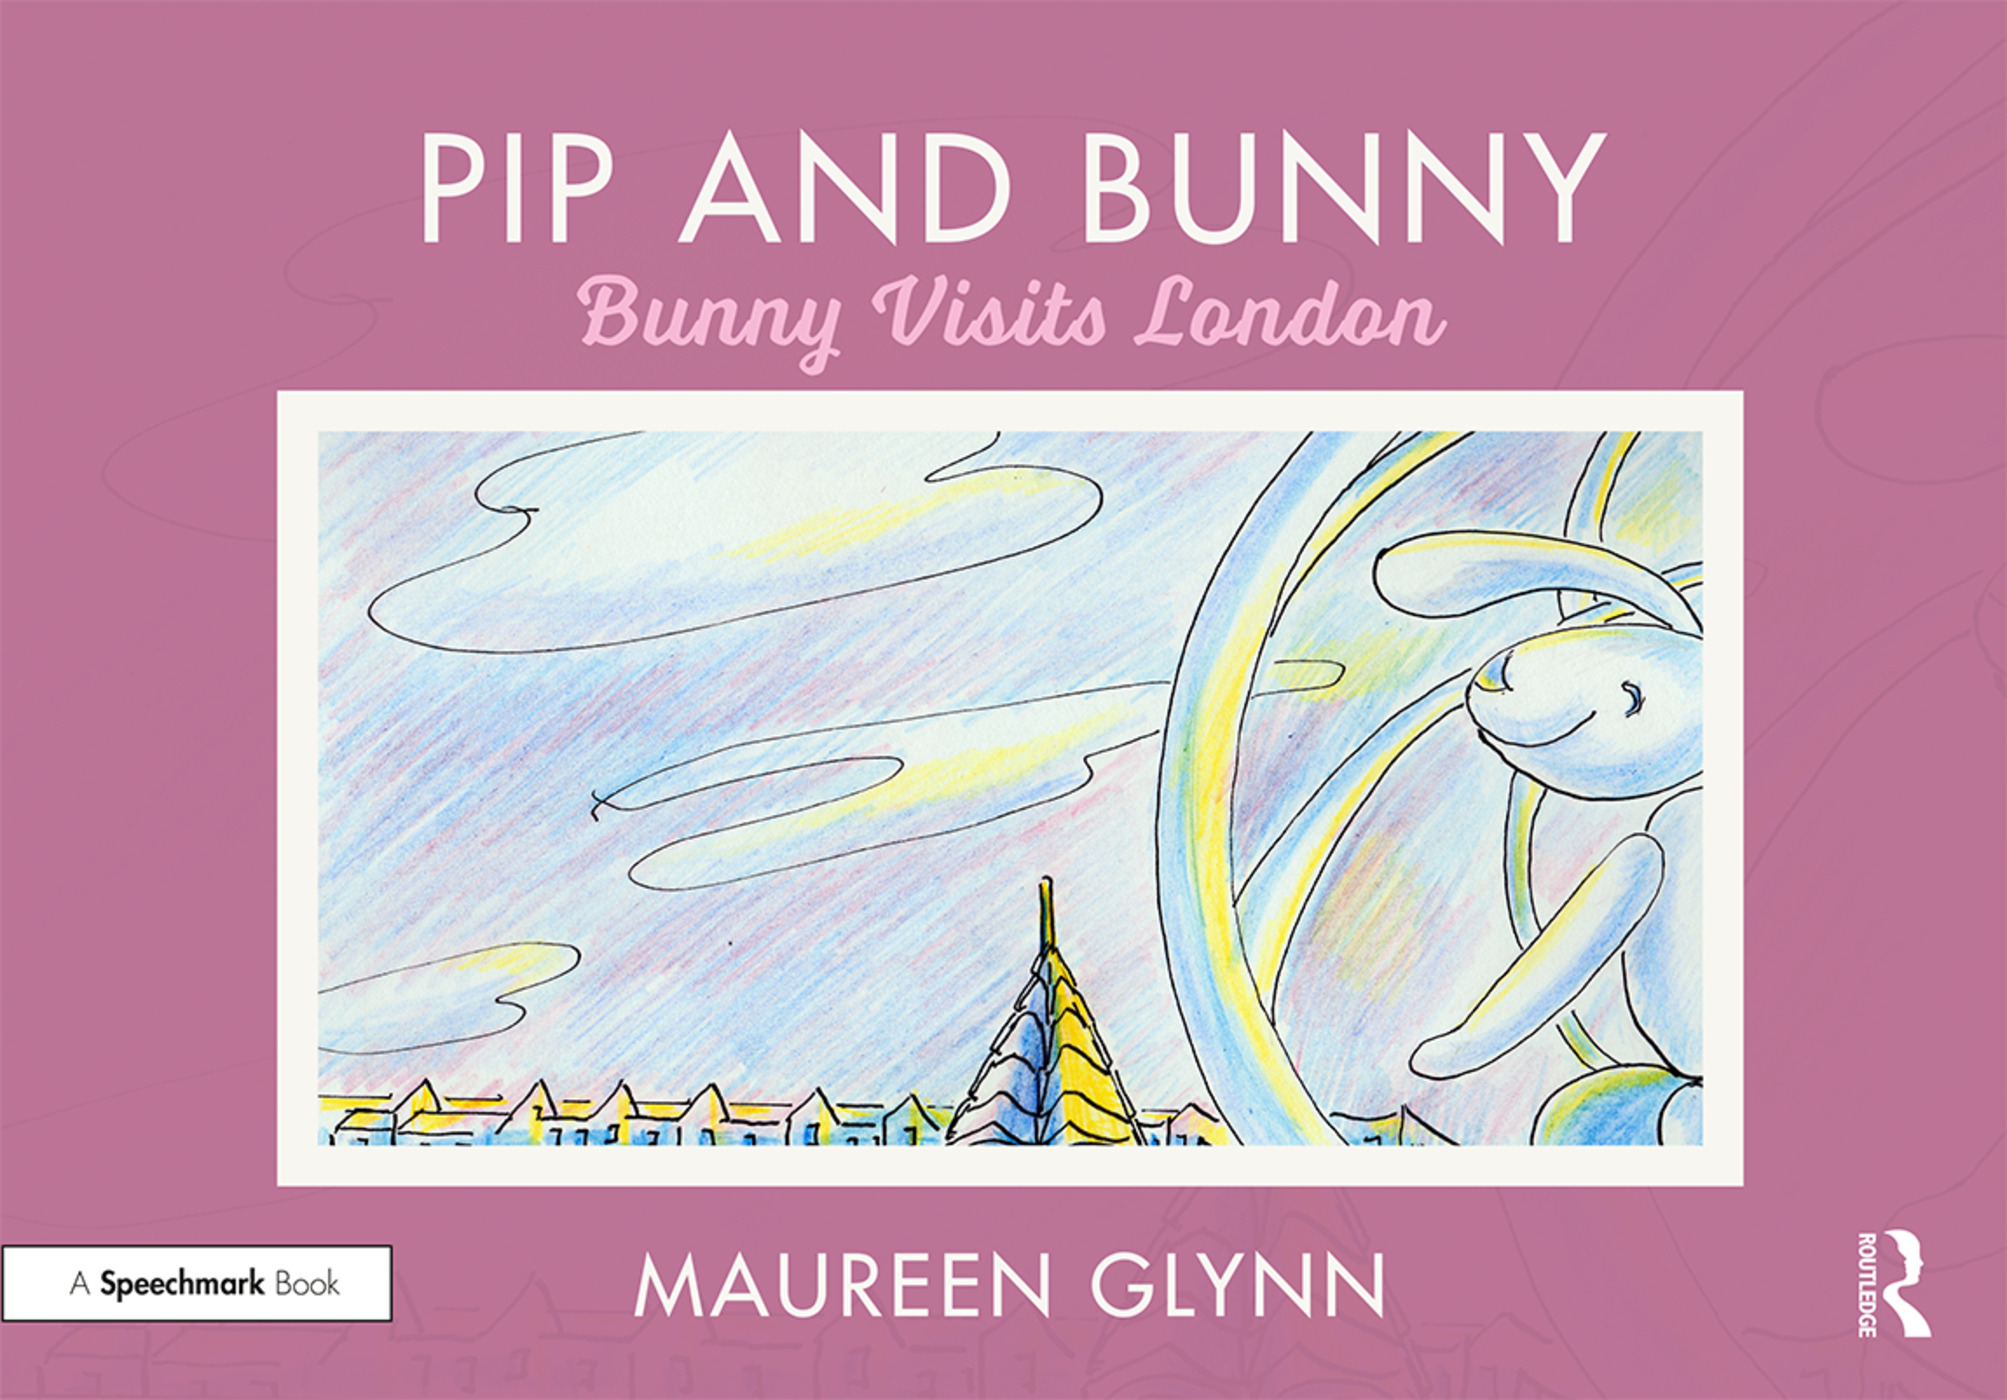 Pip and Bunny